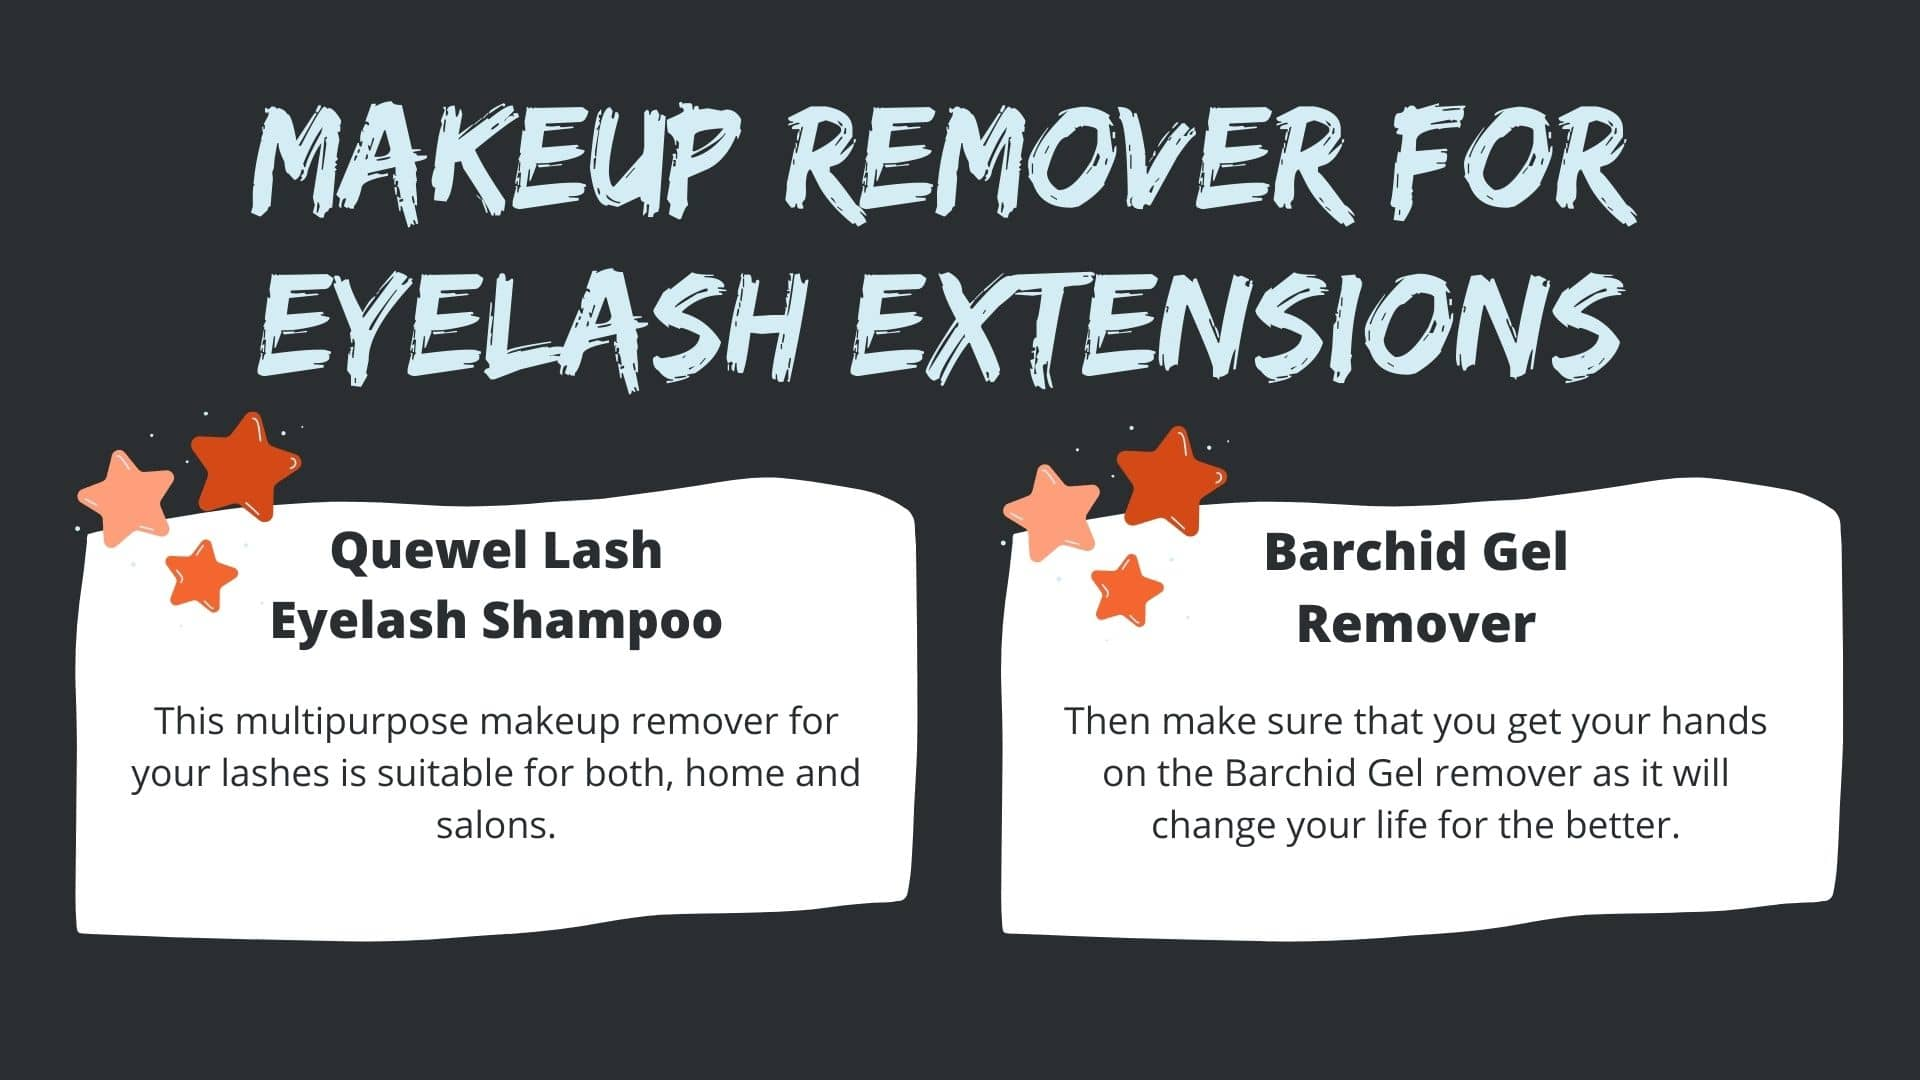 Makeup Remover for Eyelash Extensions